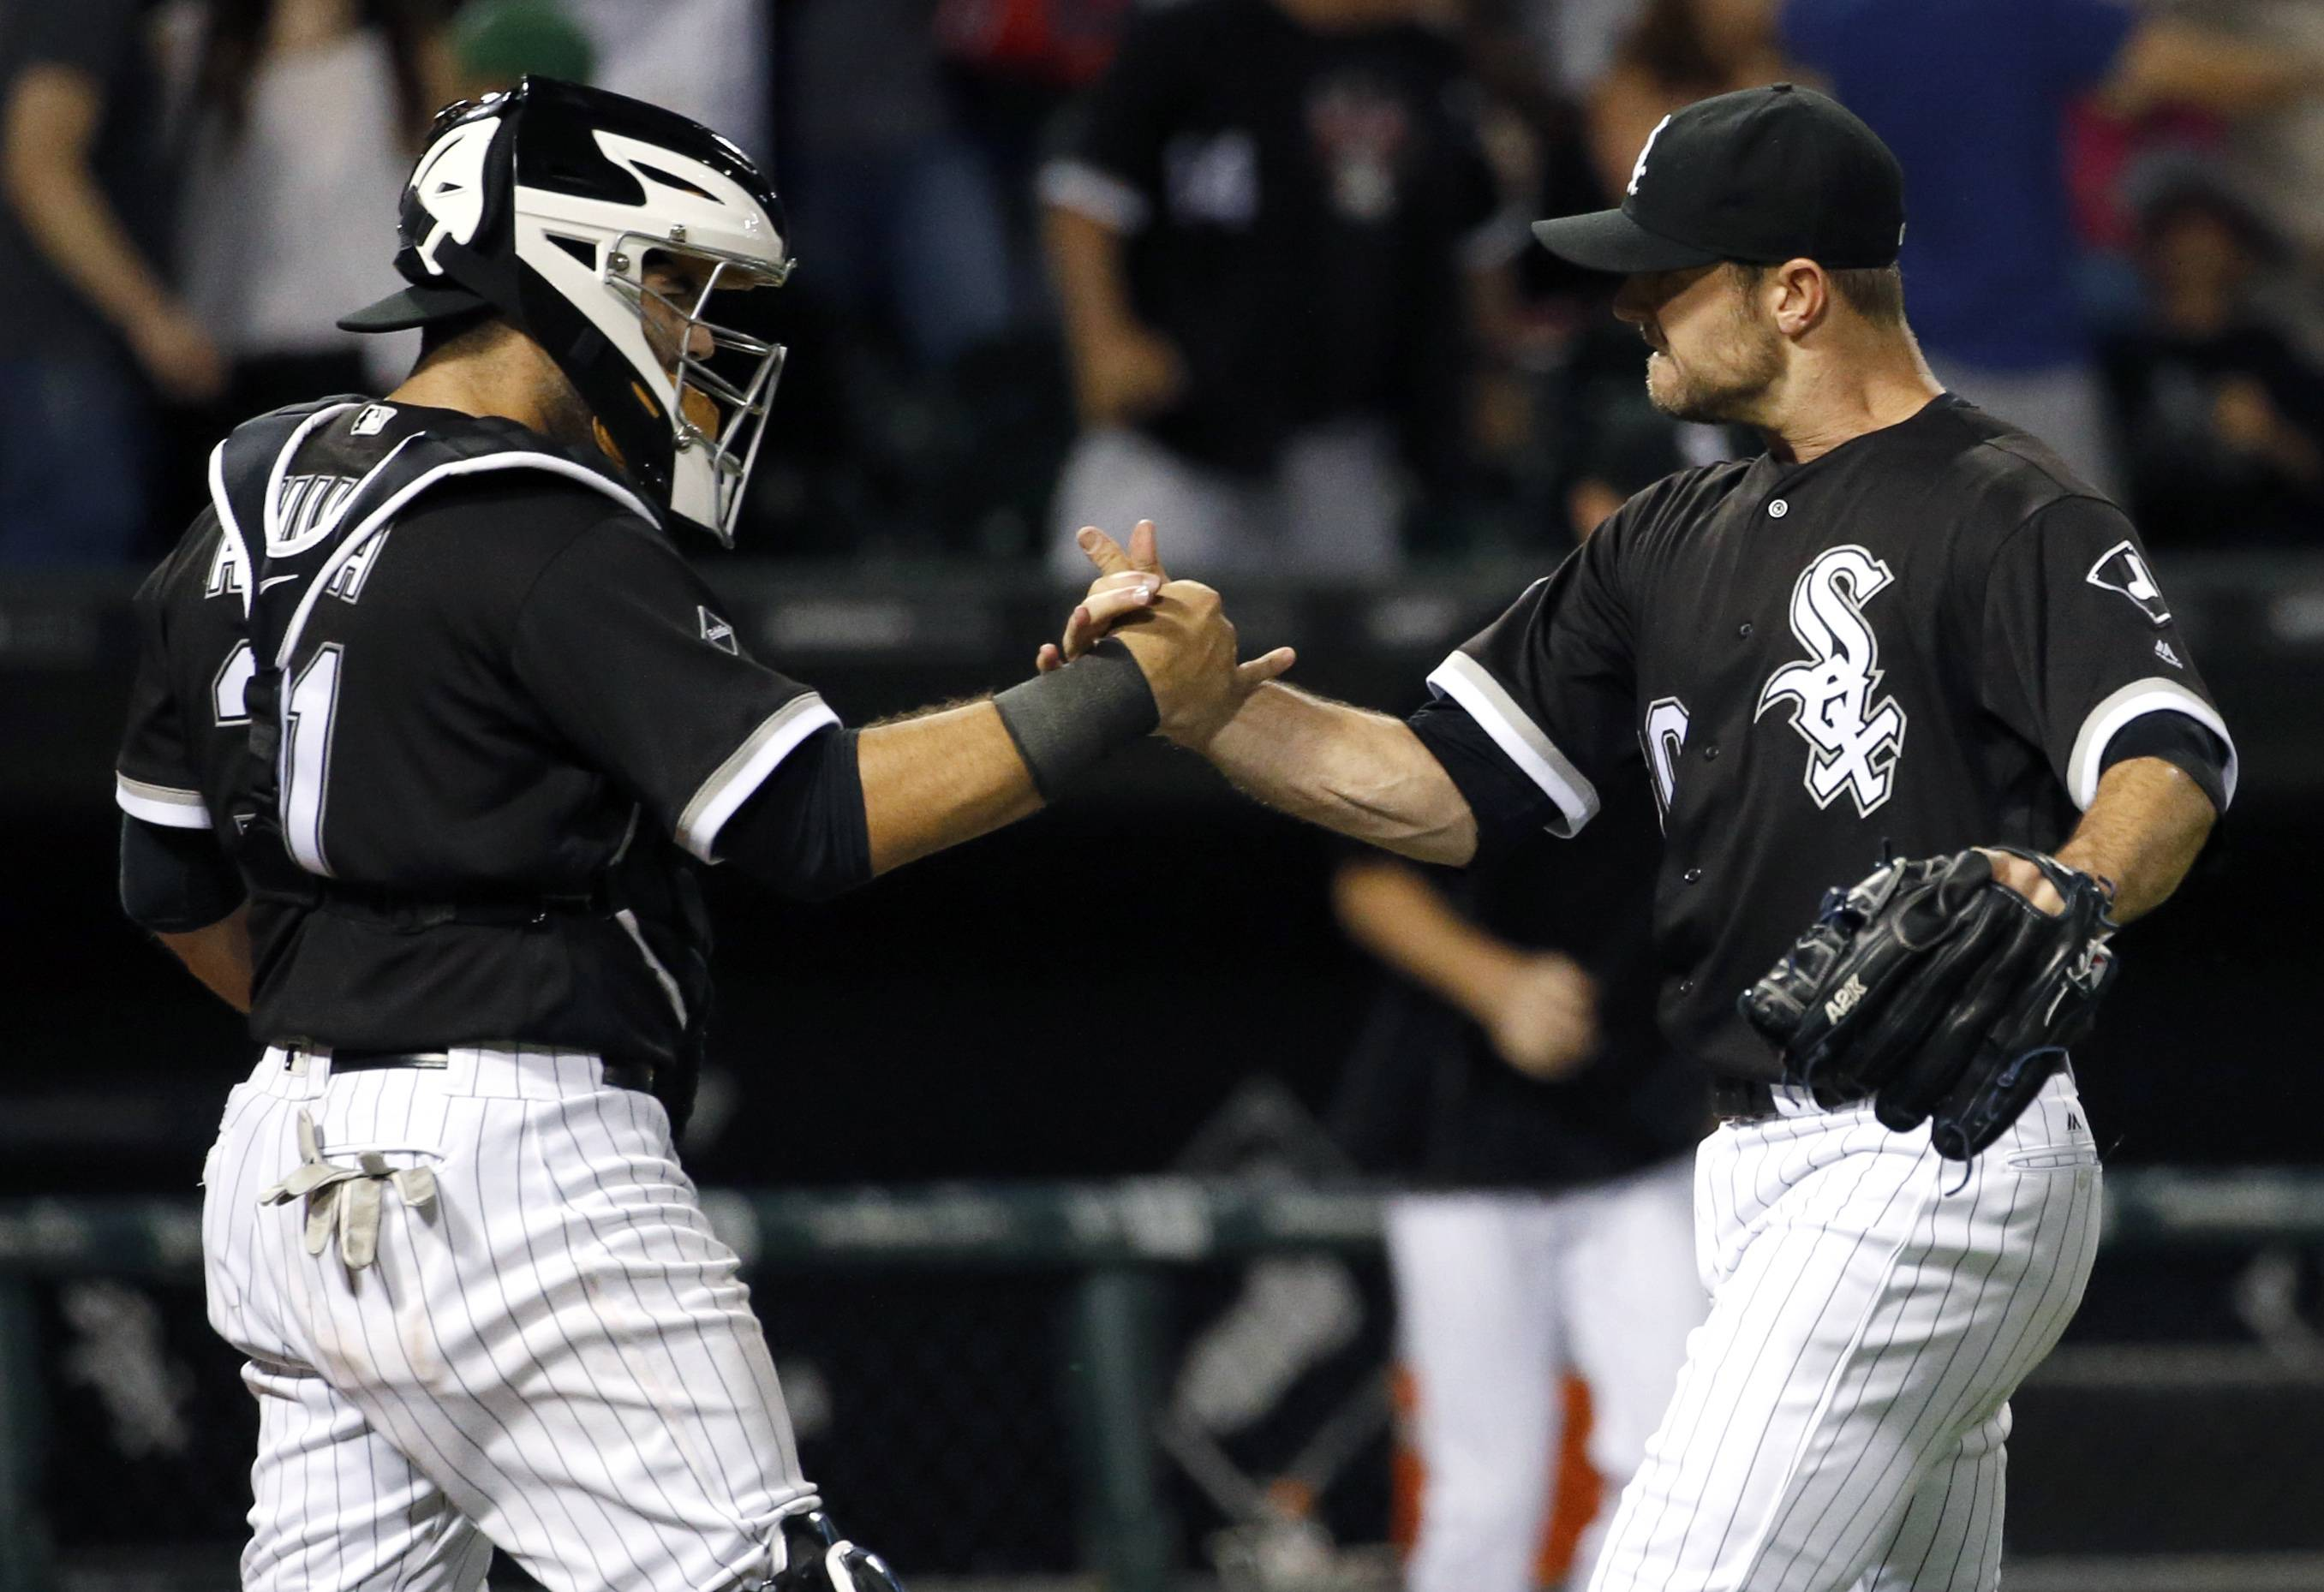 Frazier, Chicago White Sox continue to find in win over Jays